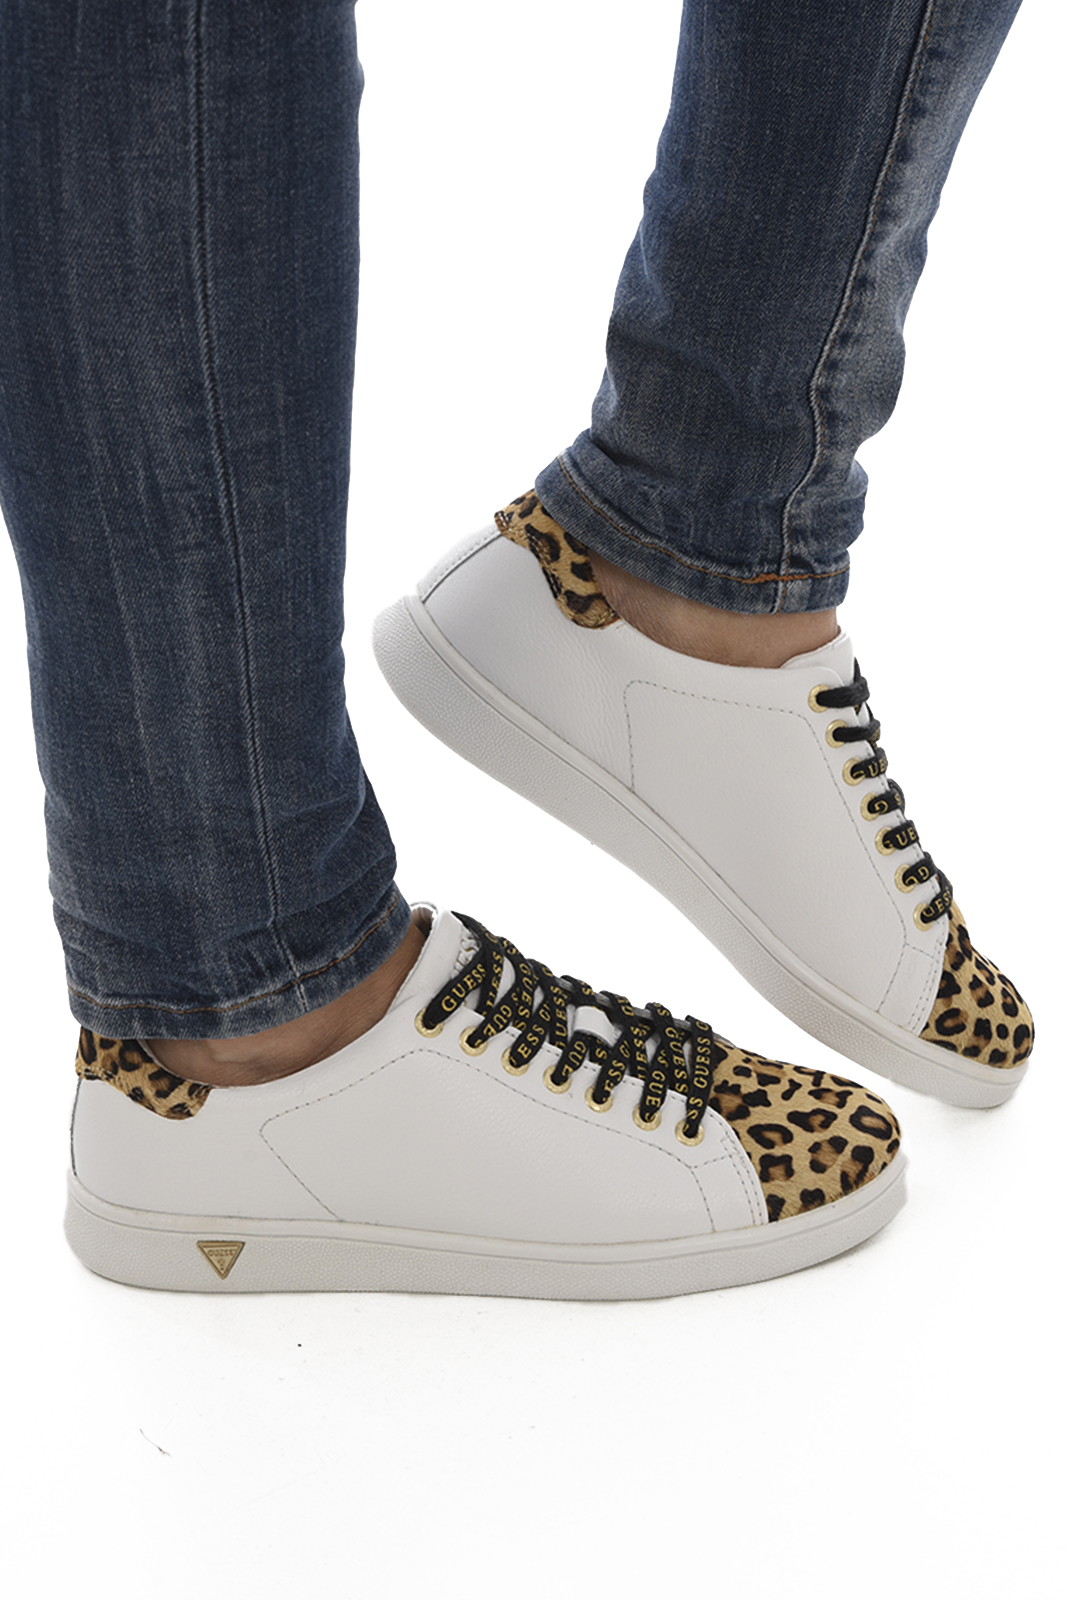 Baskets / Sneakers  Guess jeans SUPER FLUPE3 LEP12 WHITE LEOPARD